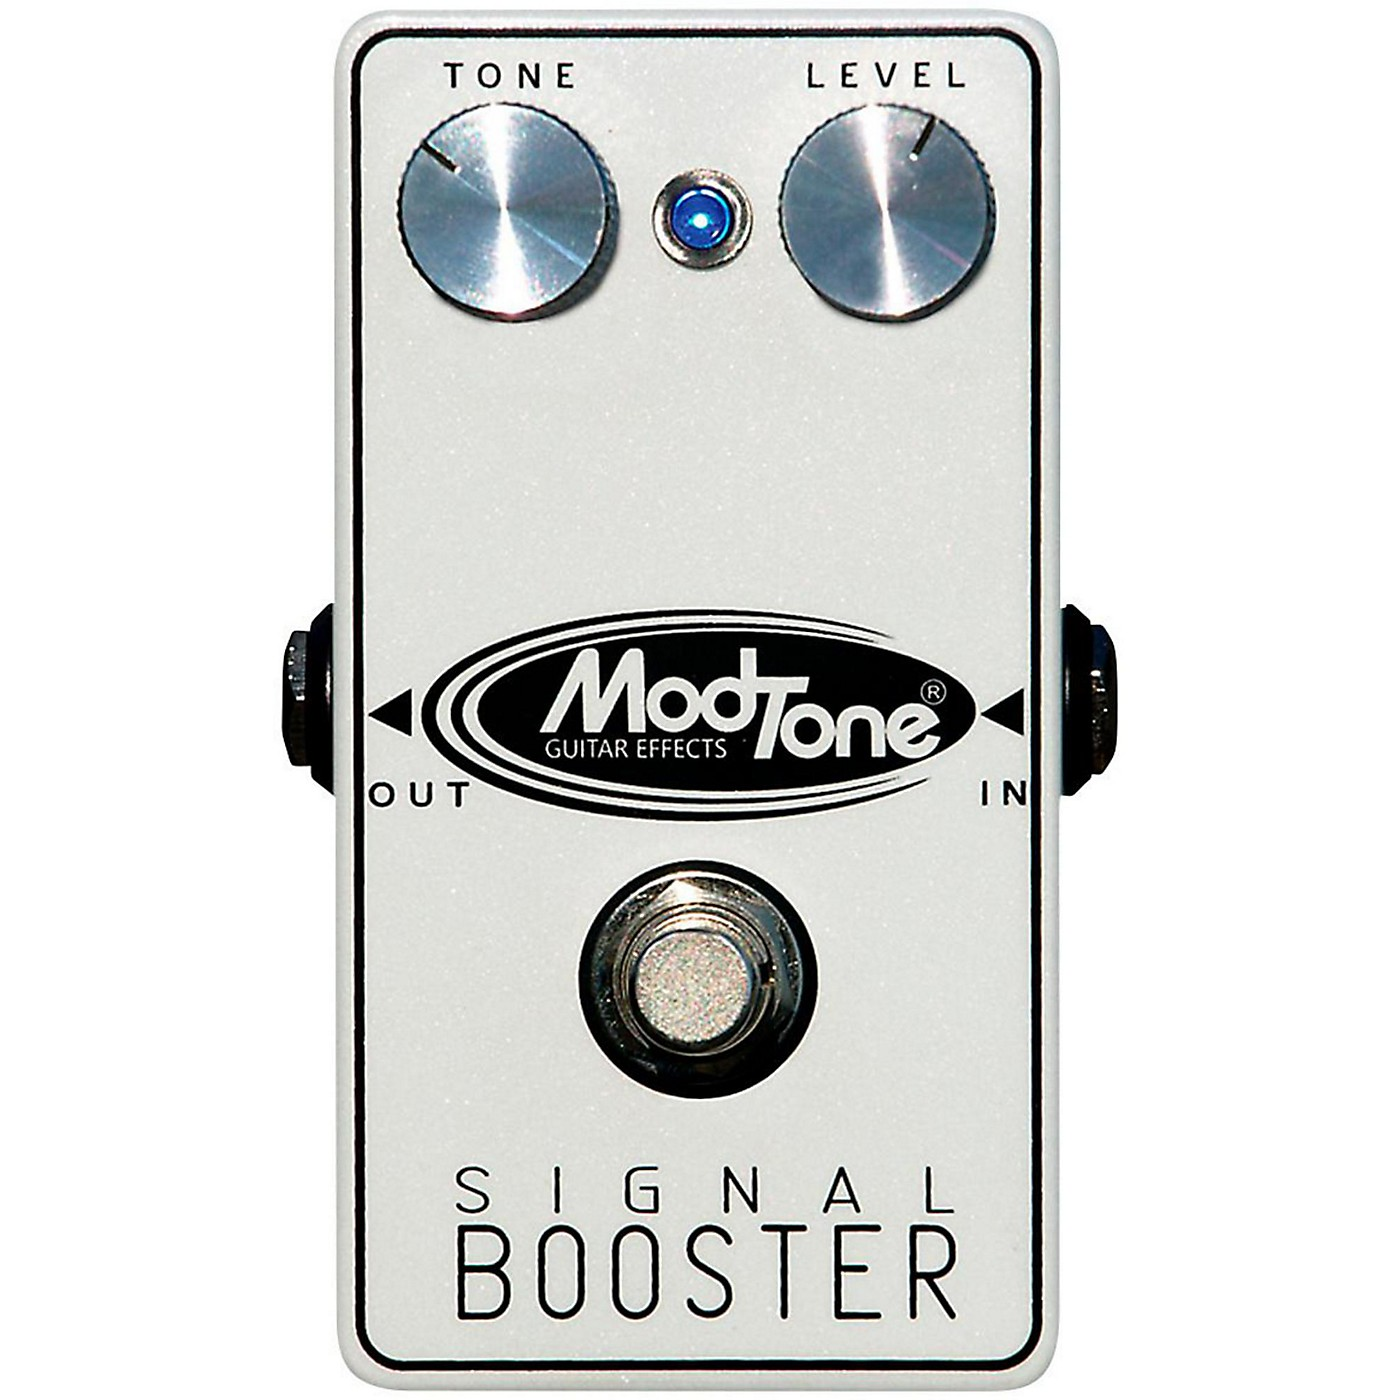 Modtone Signal Booster Guitar Pedal thumbnail